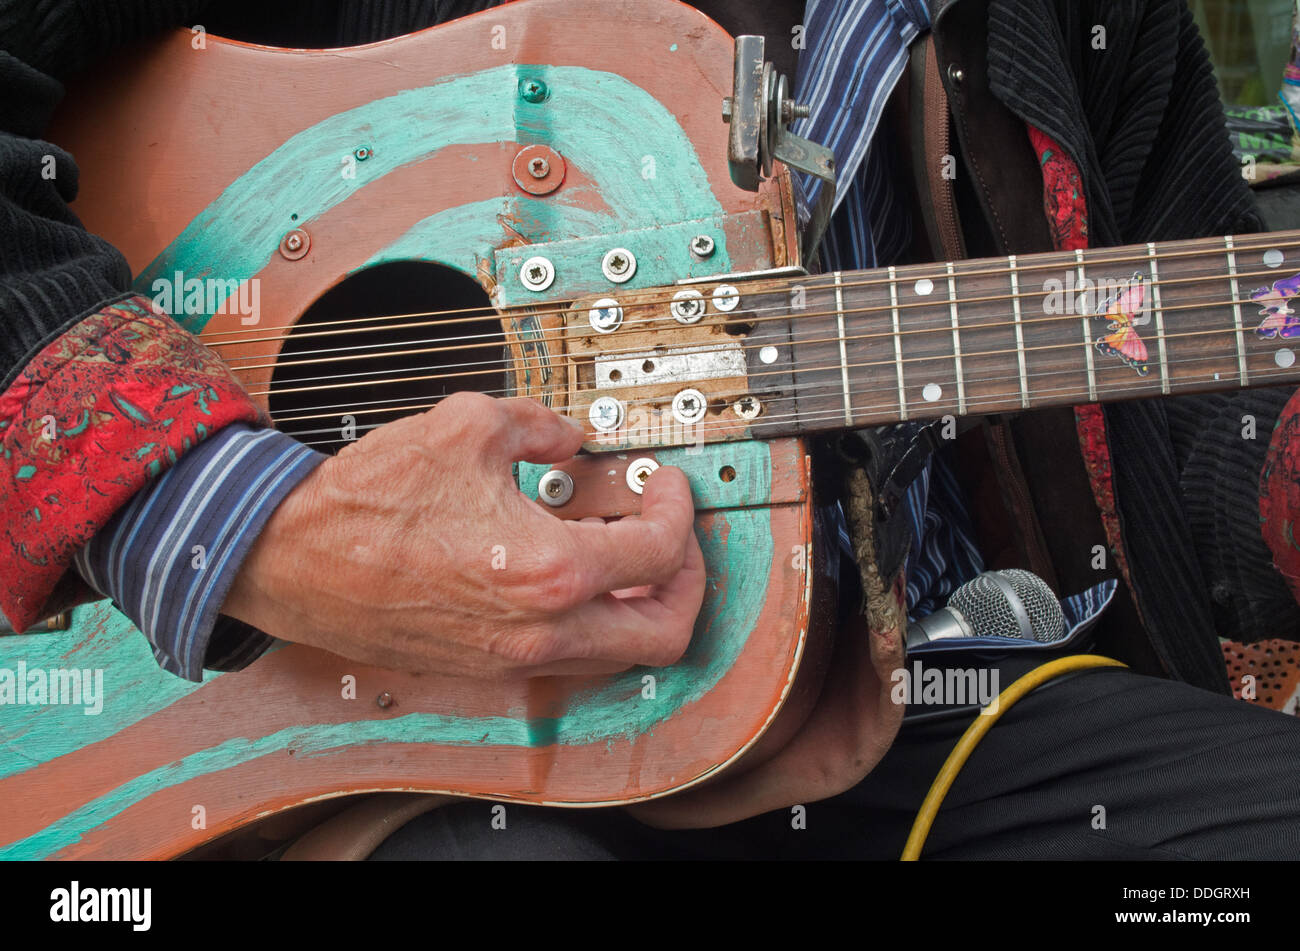 Man playing a repaired hand painted guitar Stock Photo